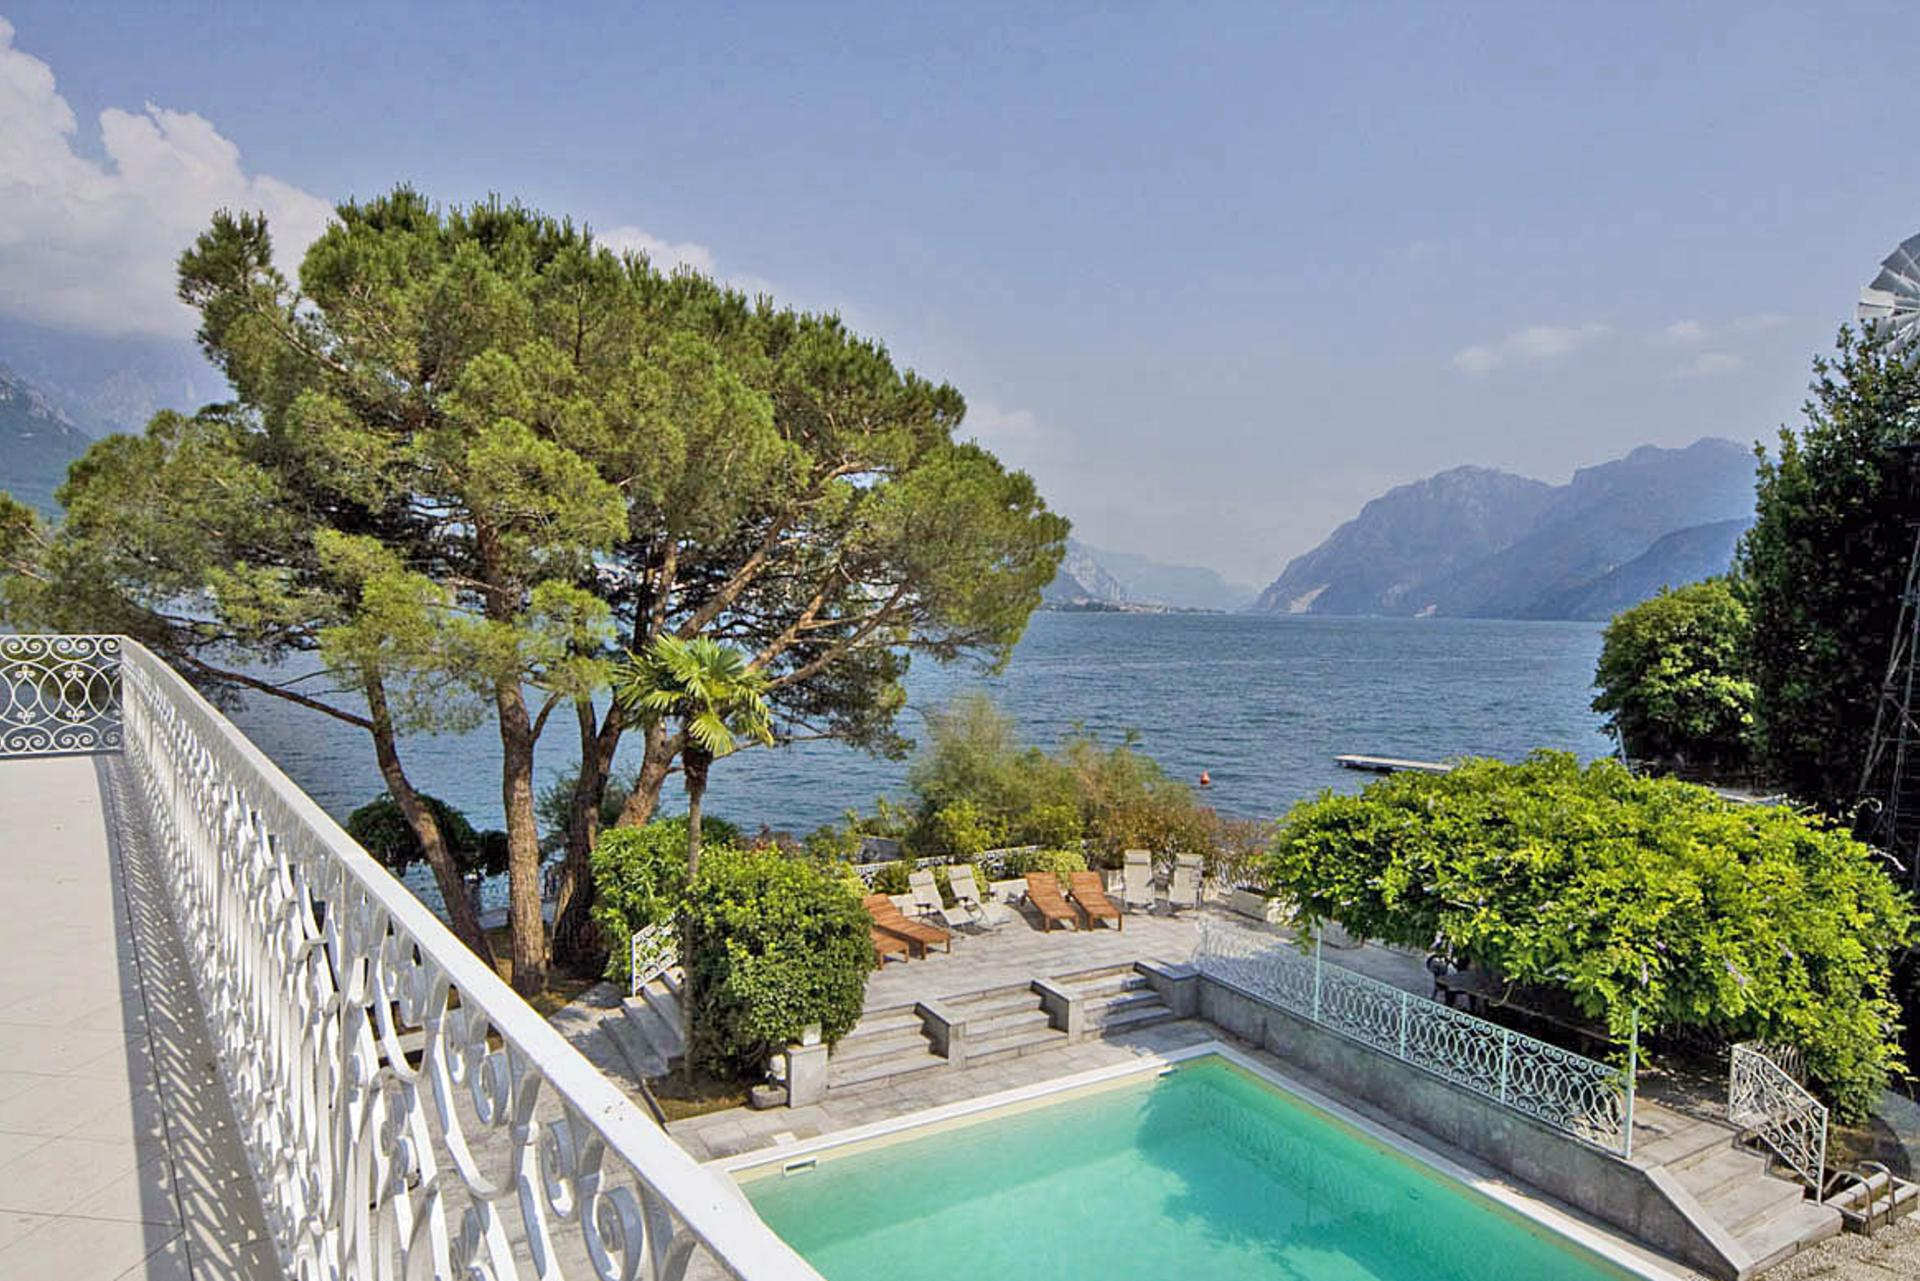 Villa Views, Dama del Lago, Bellagio, Italian Lakes.